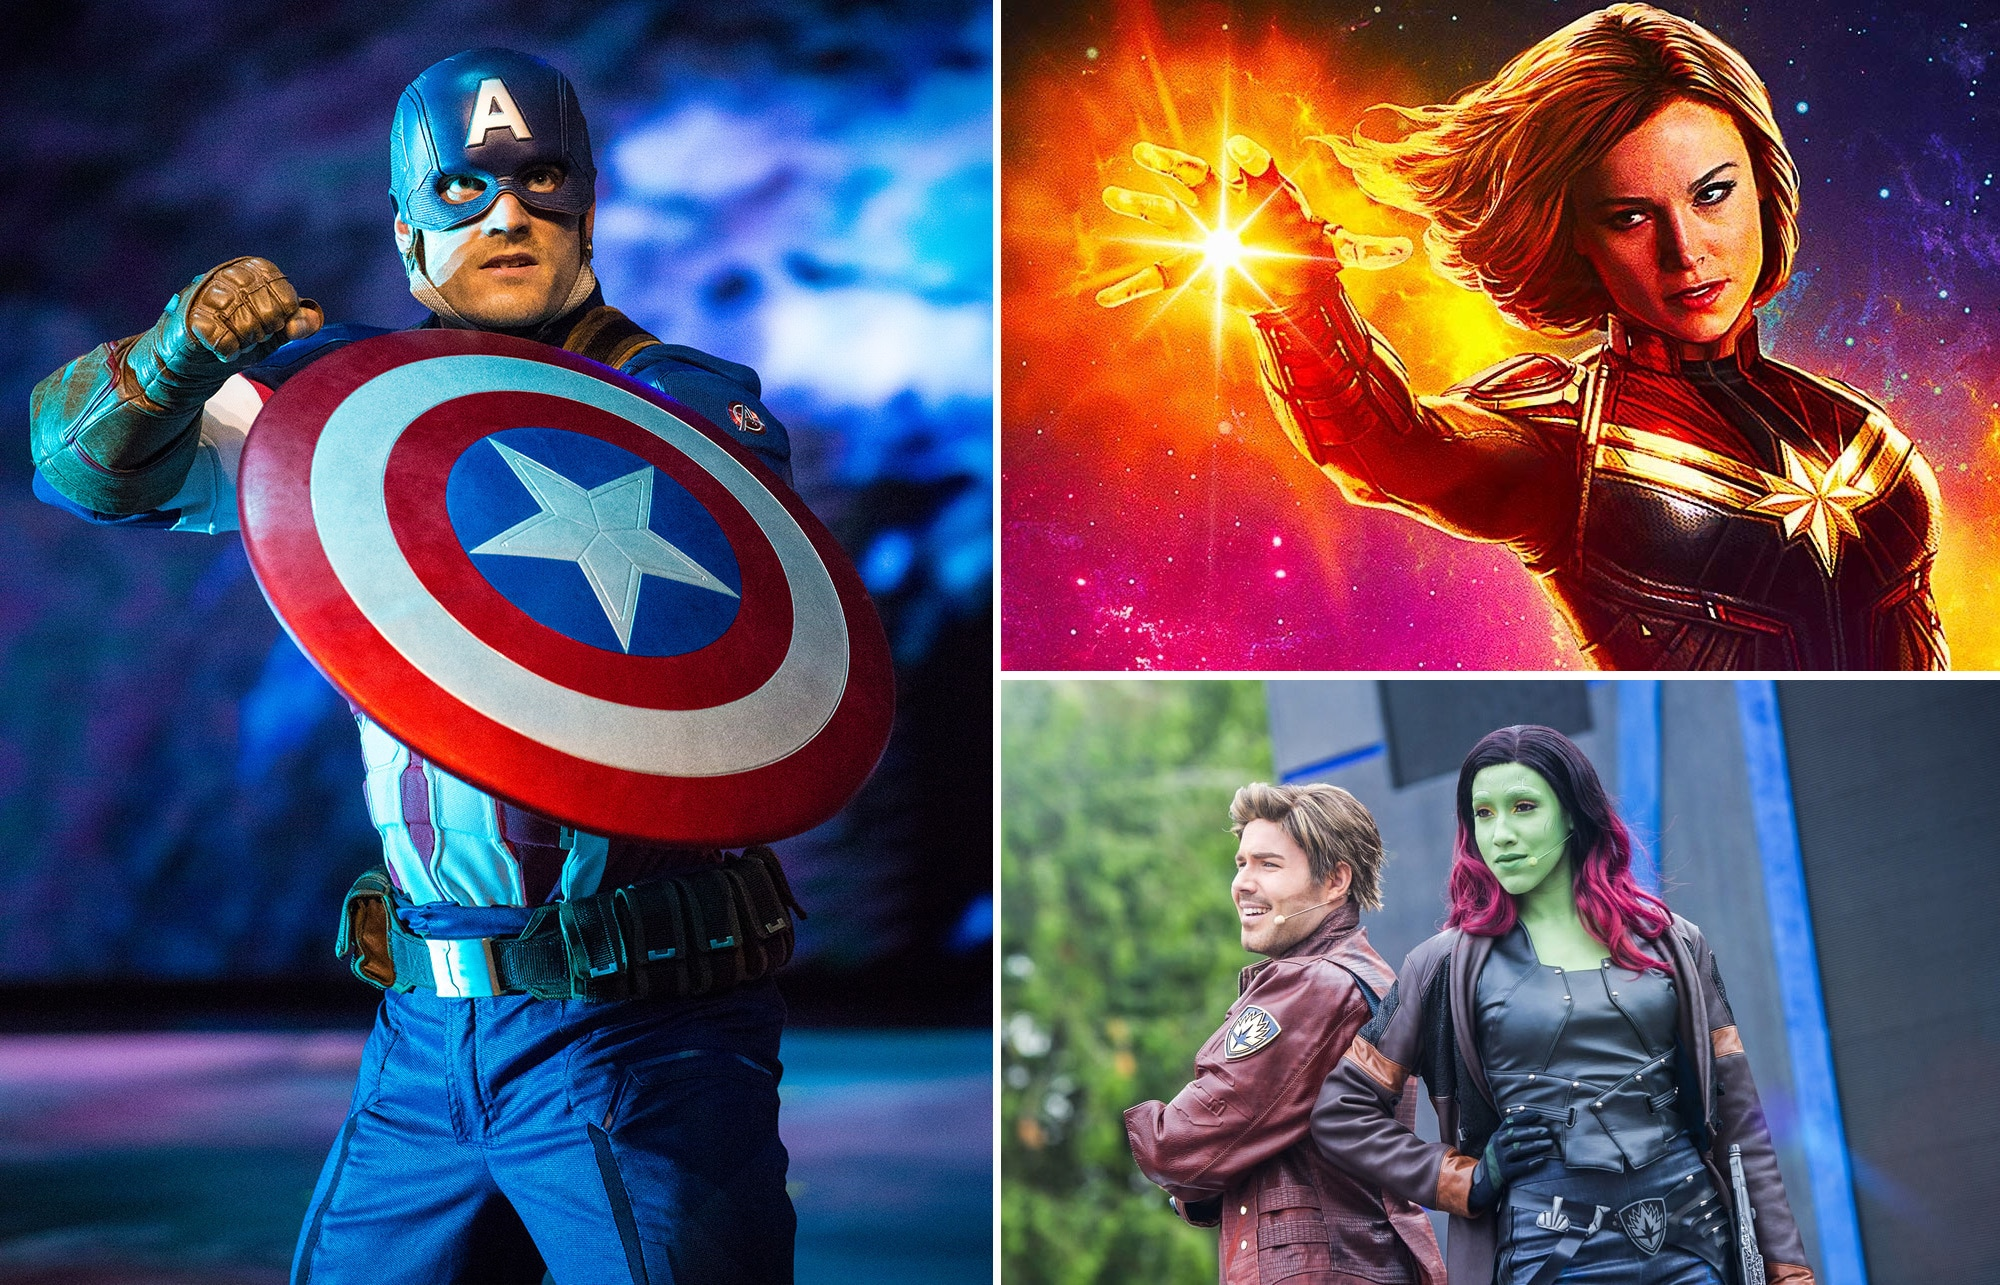 Die Marvel Superhelden in Disneyland® Paris